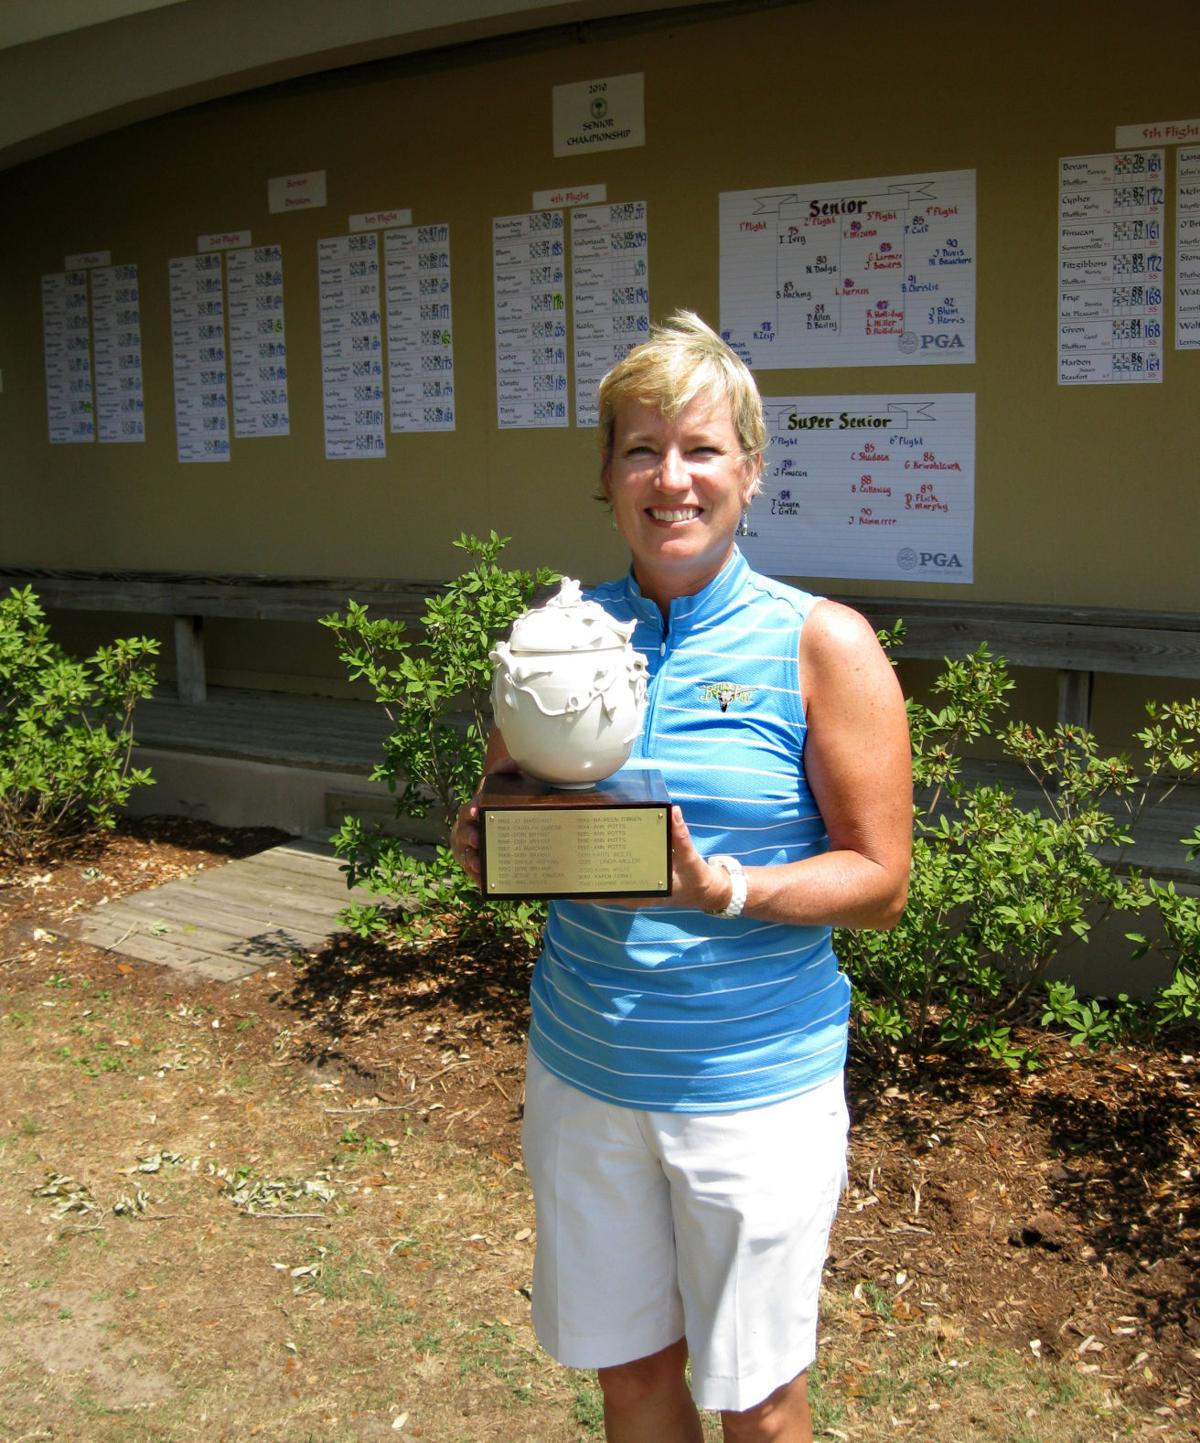 Defending champion Lea Anne Brown leads by 1 in WSCGA Senior Championship